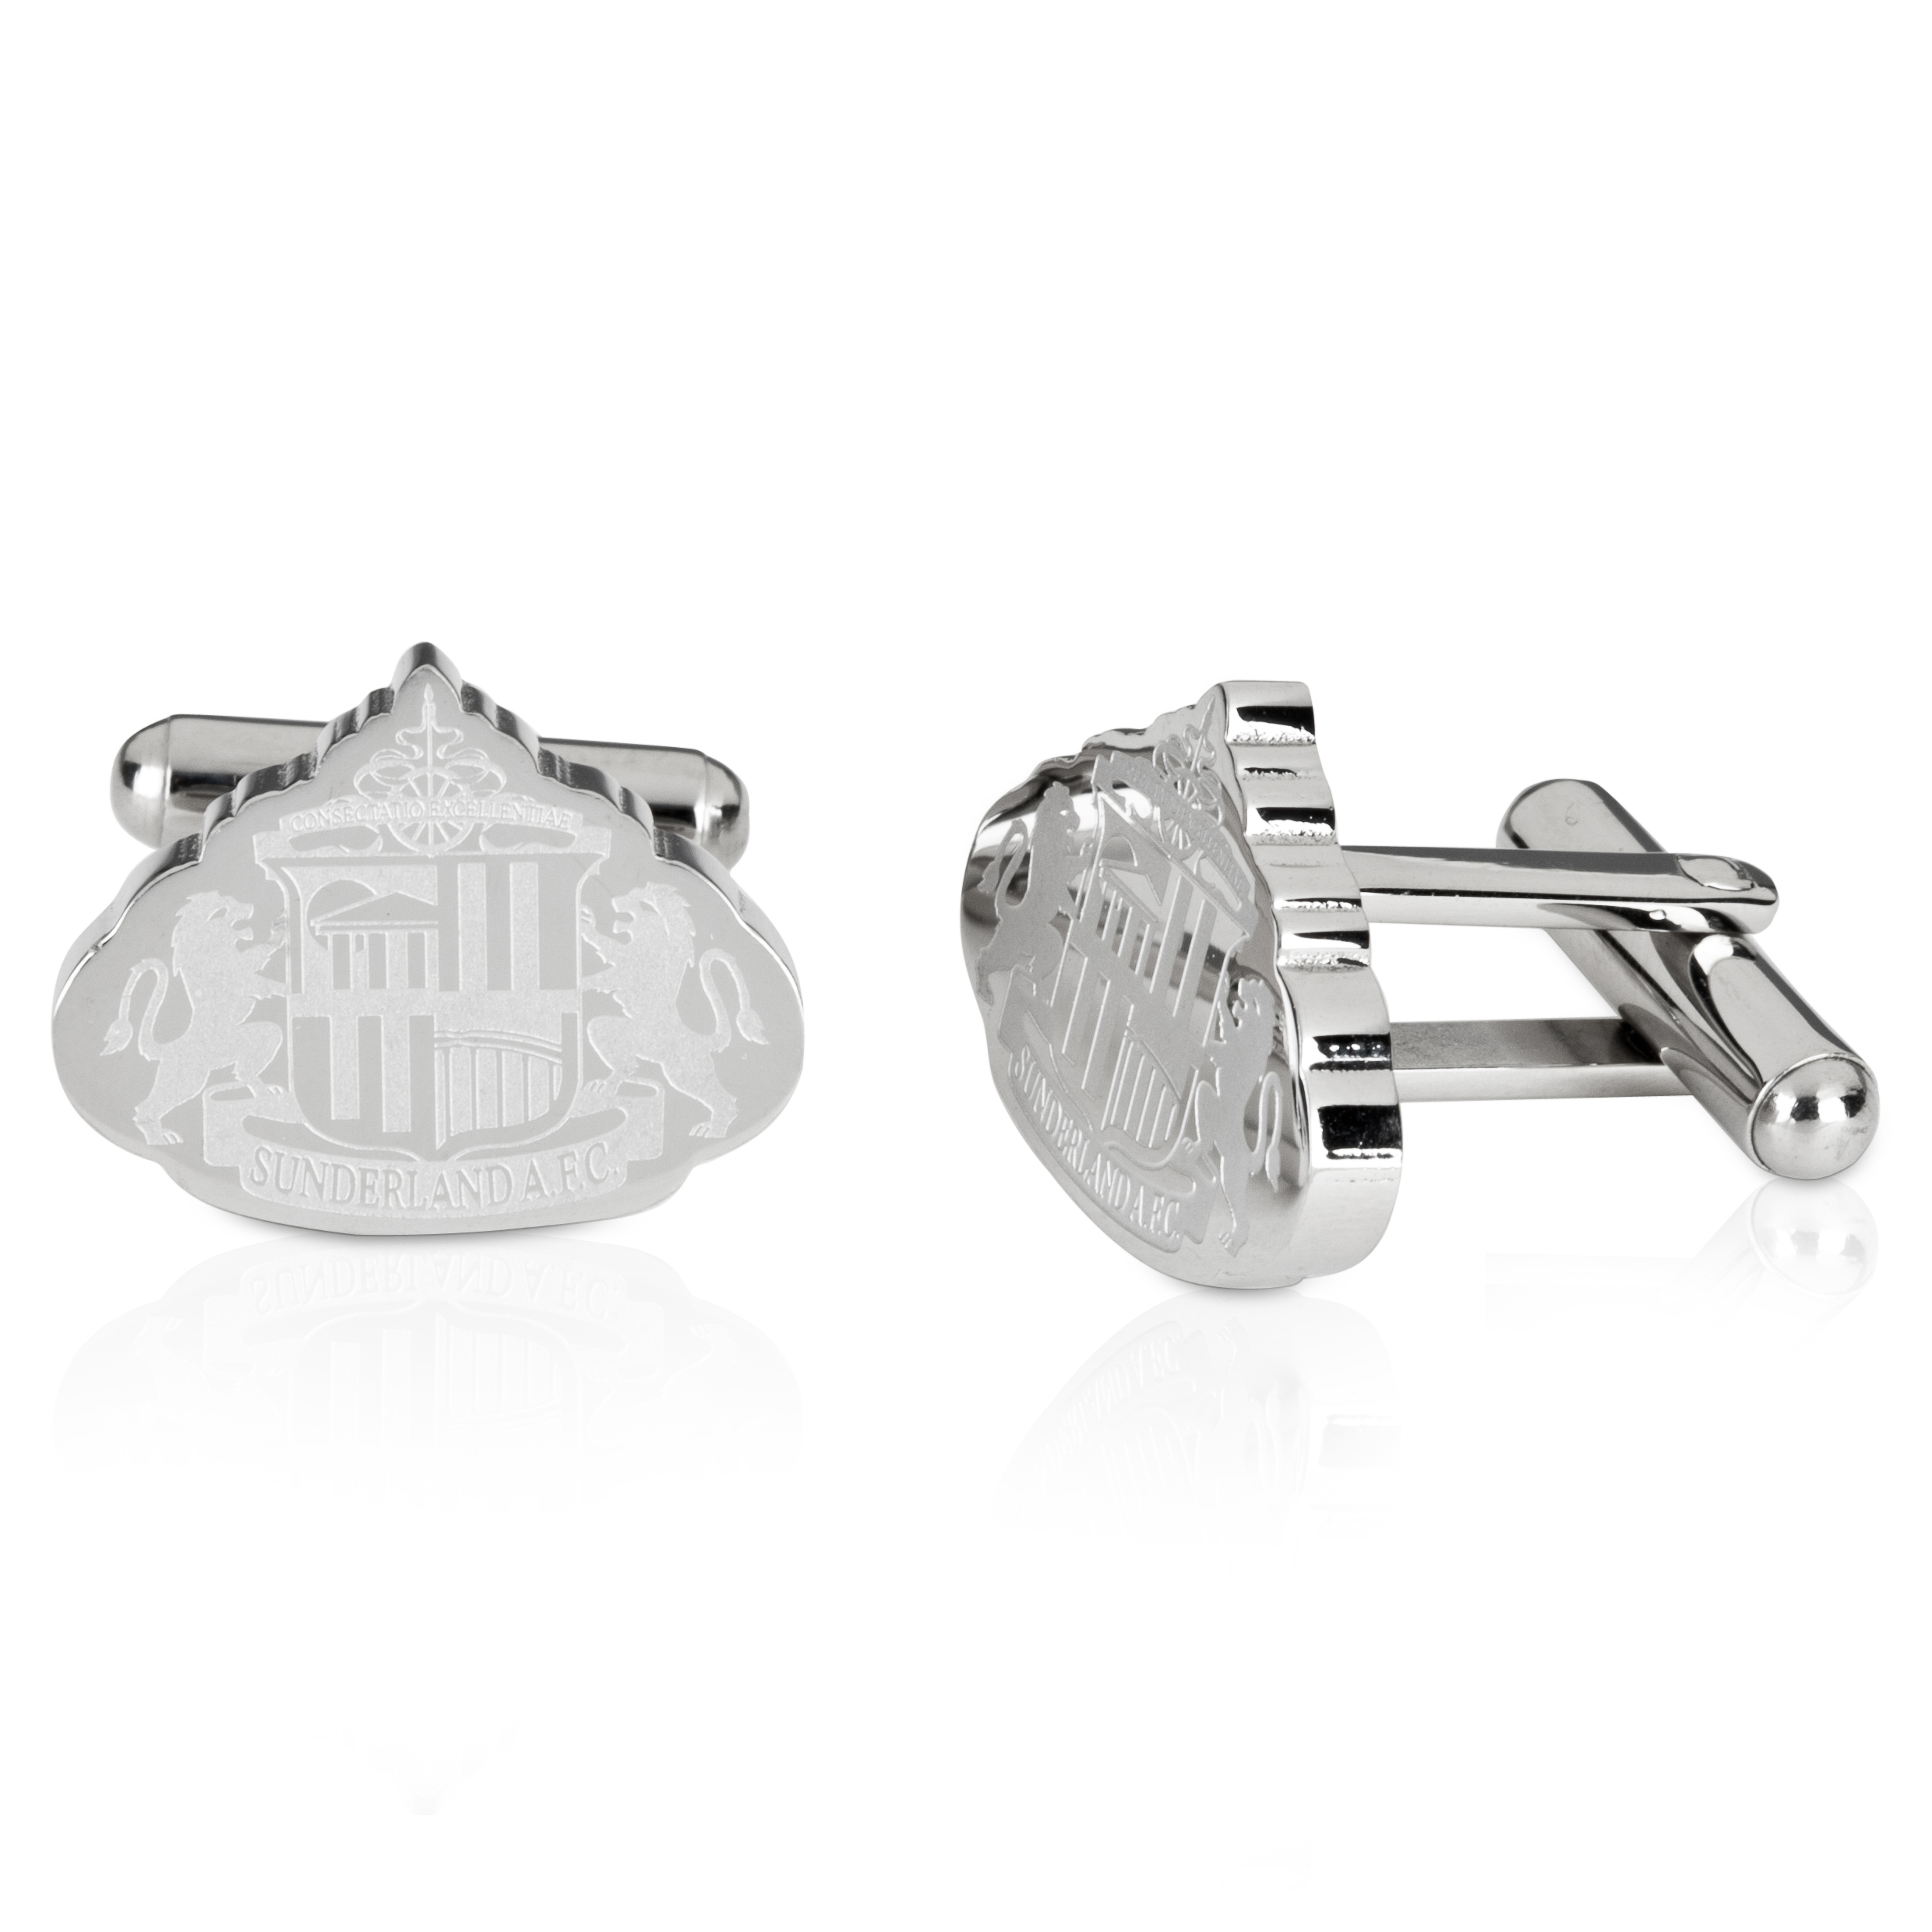 Sunderland Stainless Steel Cutout Cufflinks